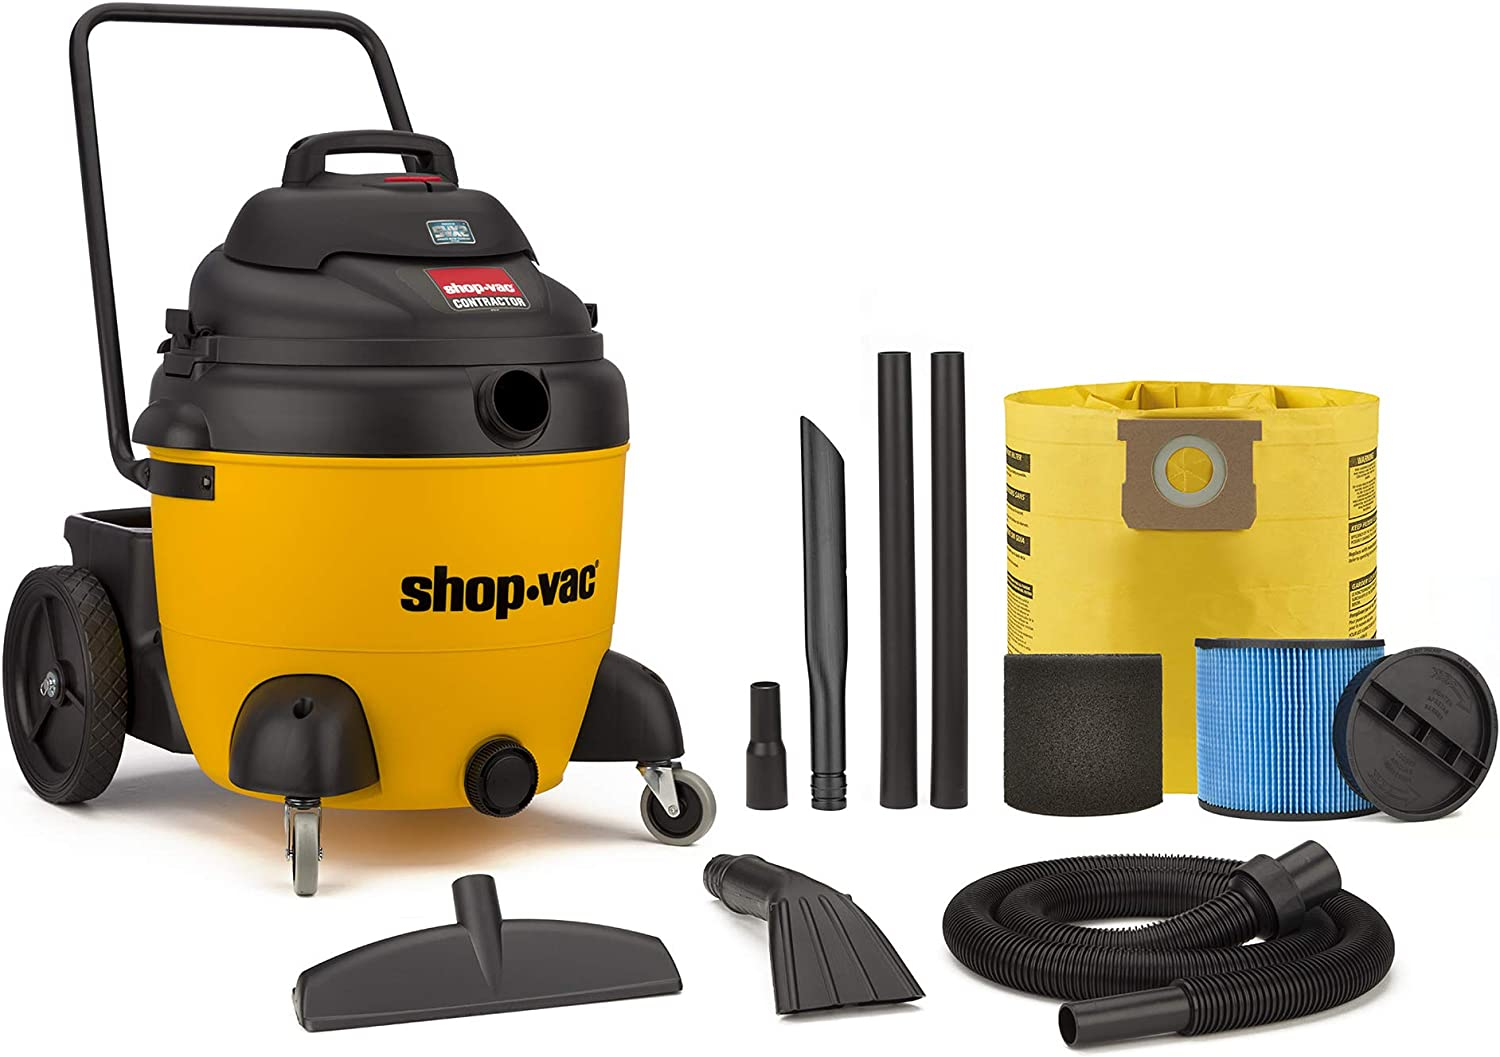 Shop-Vac 9627410 18 Gallon 6.5 Peak HP Contractor Wet Dry Vacuum